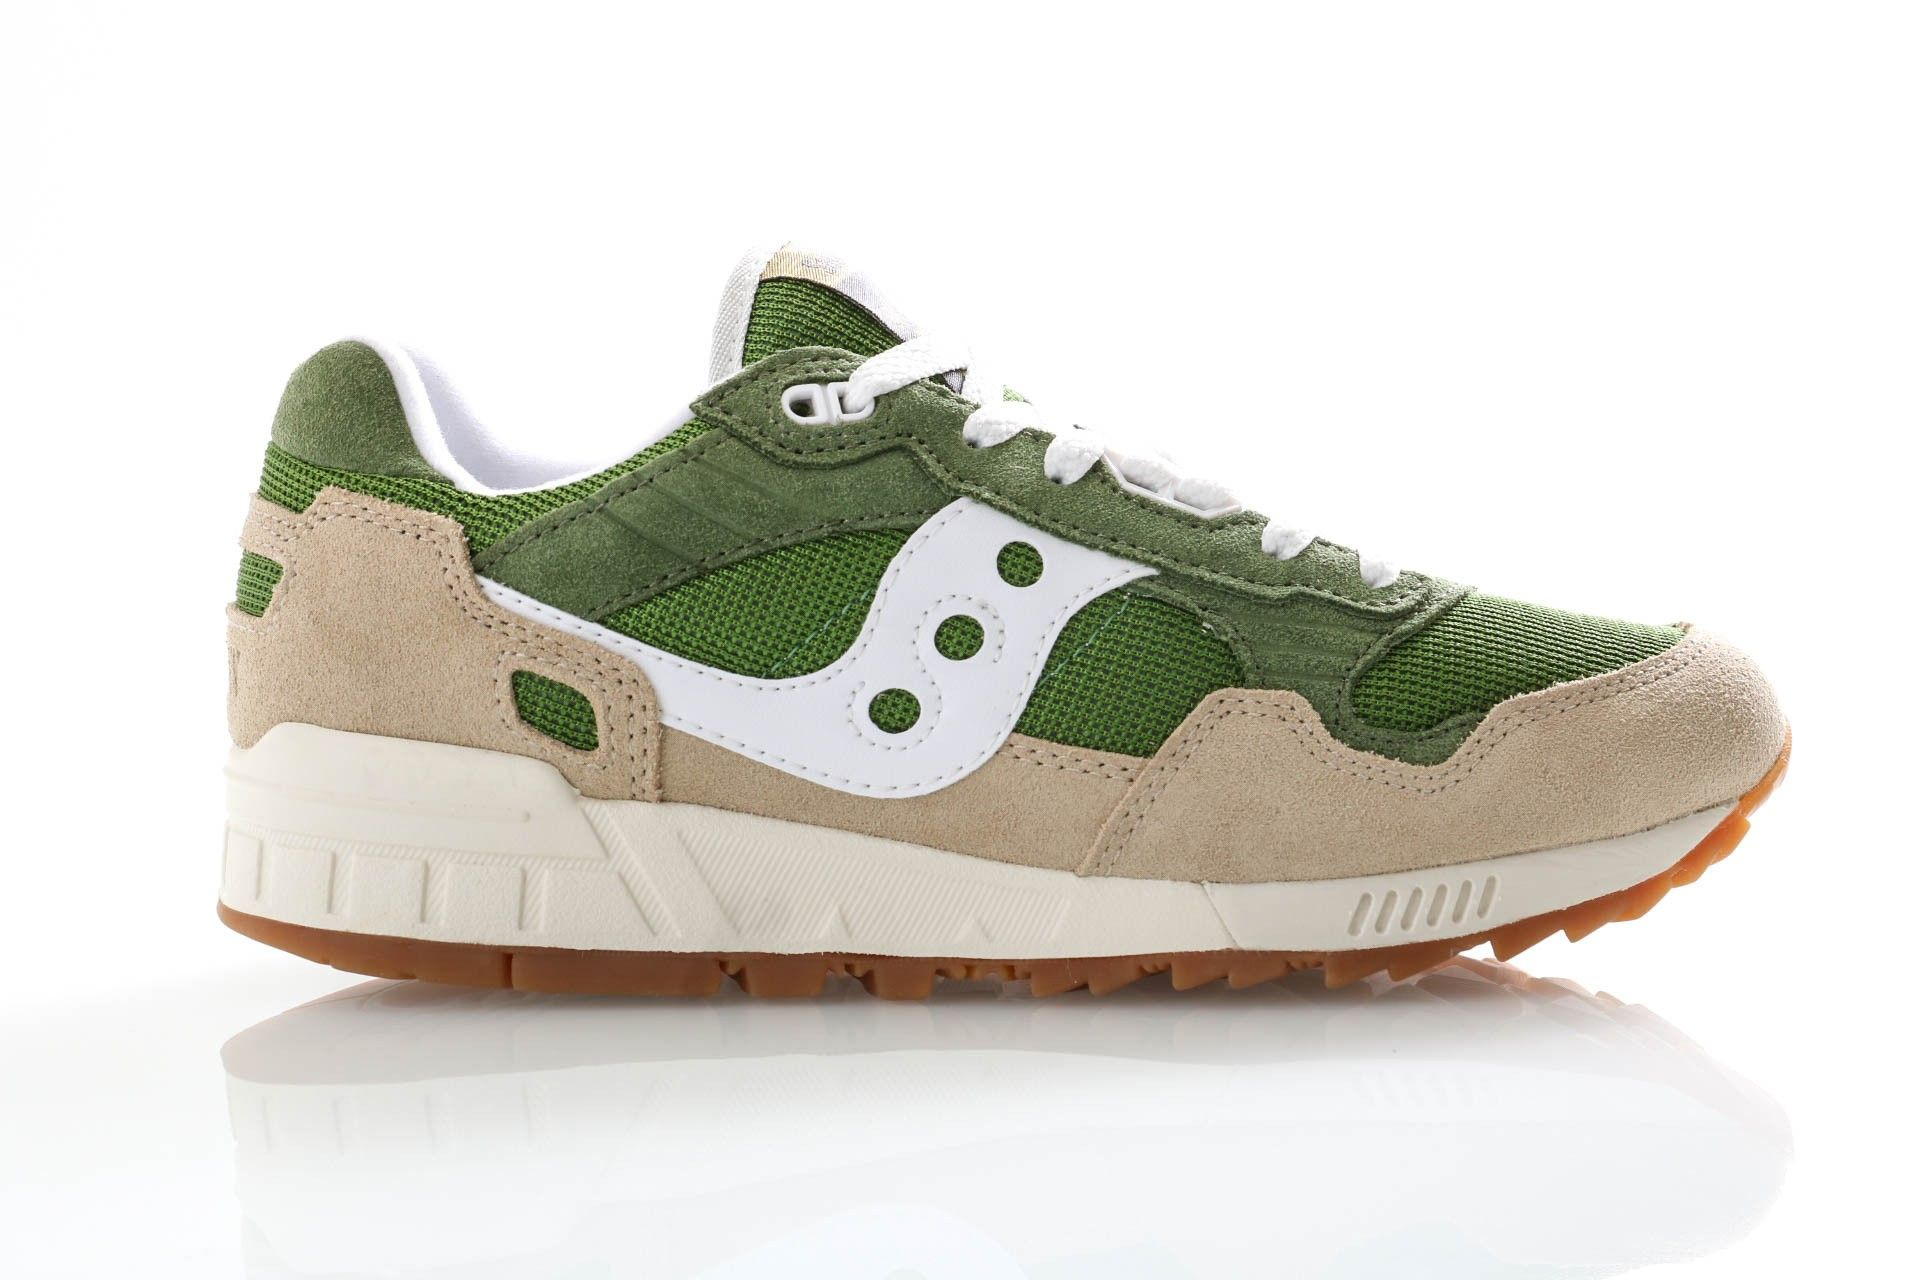 Afbeelding van Saucony Sneakers Shadow 5000 Green/Brown S70404-25